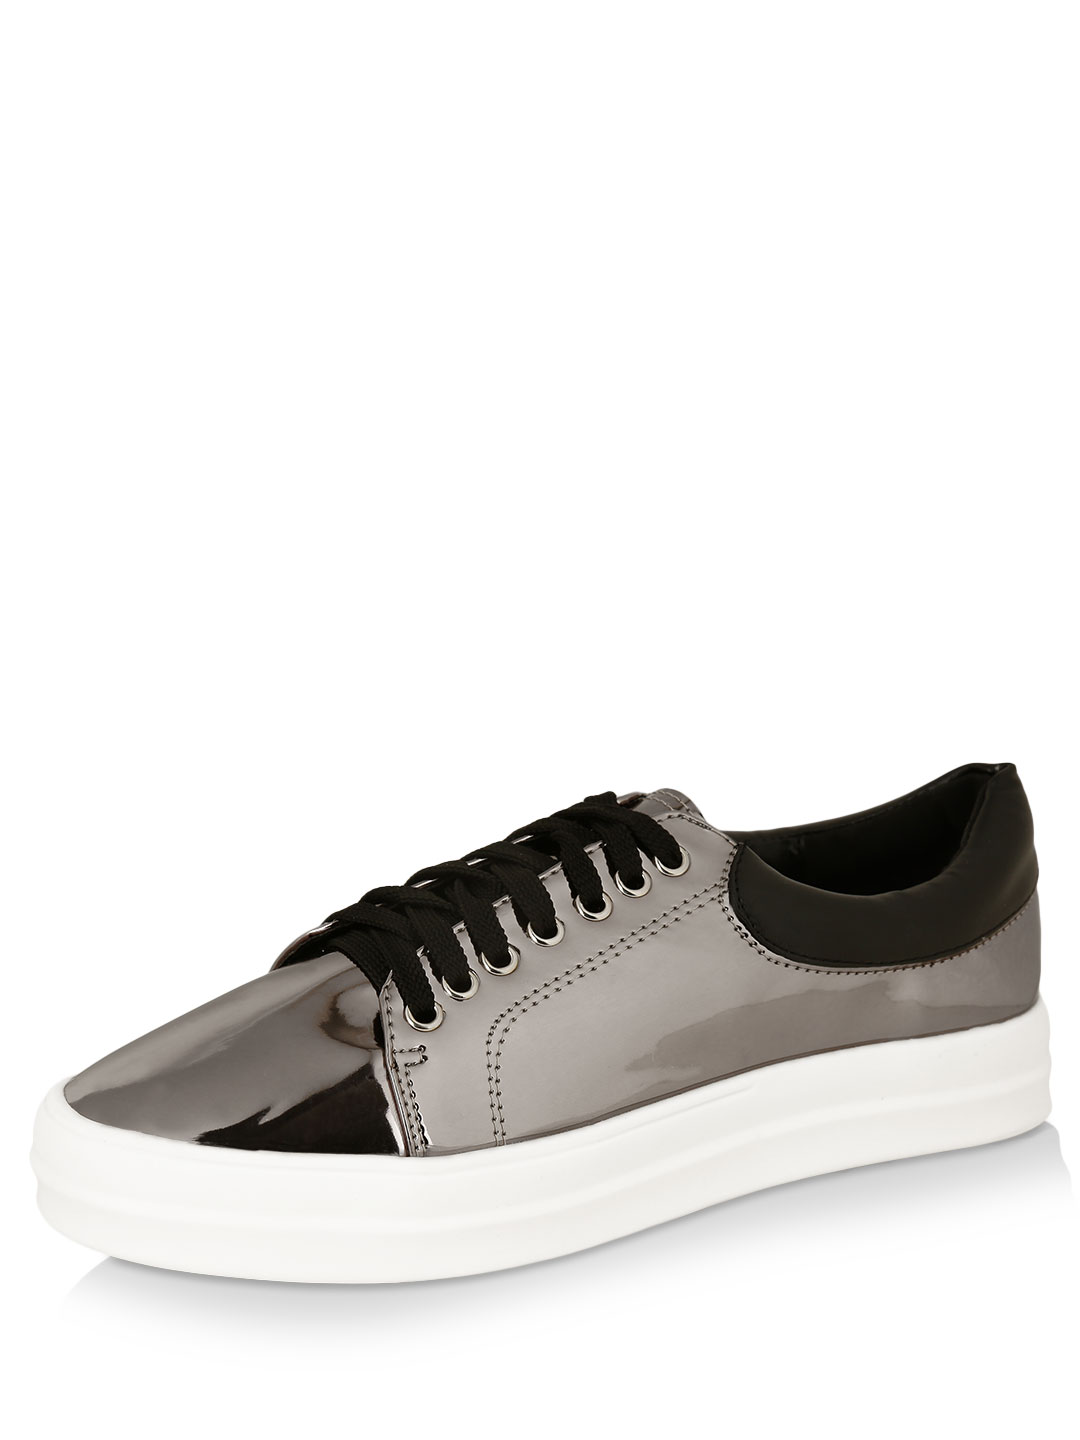 My Foot Couture Pewter Mirror Finish Trainers 1